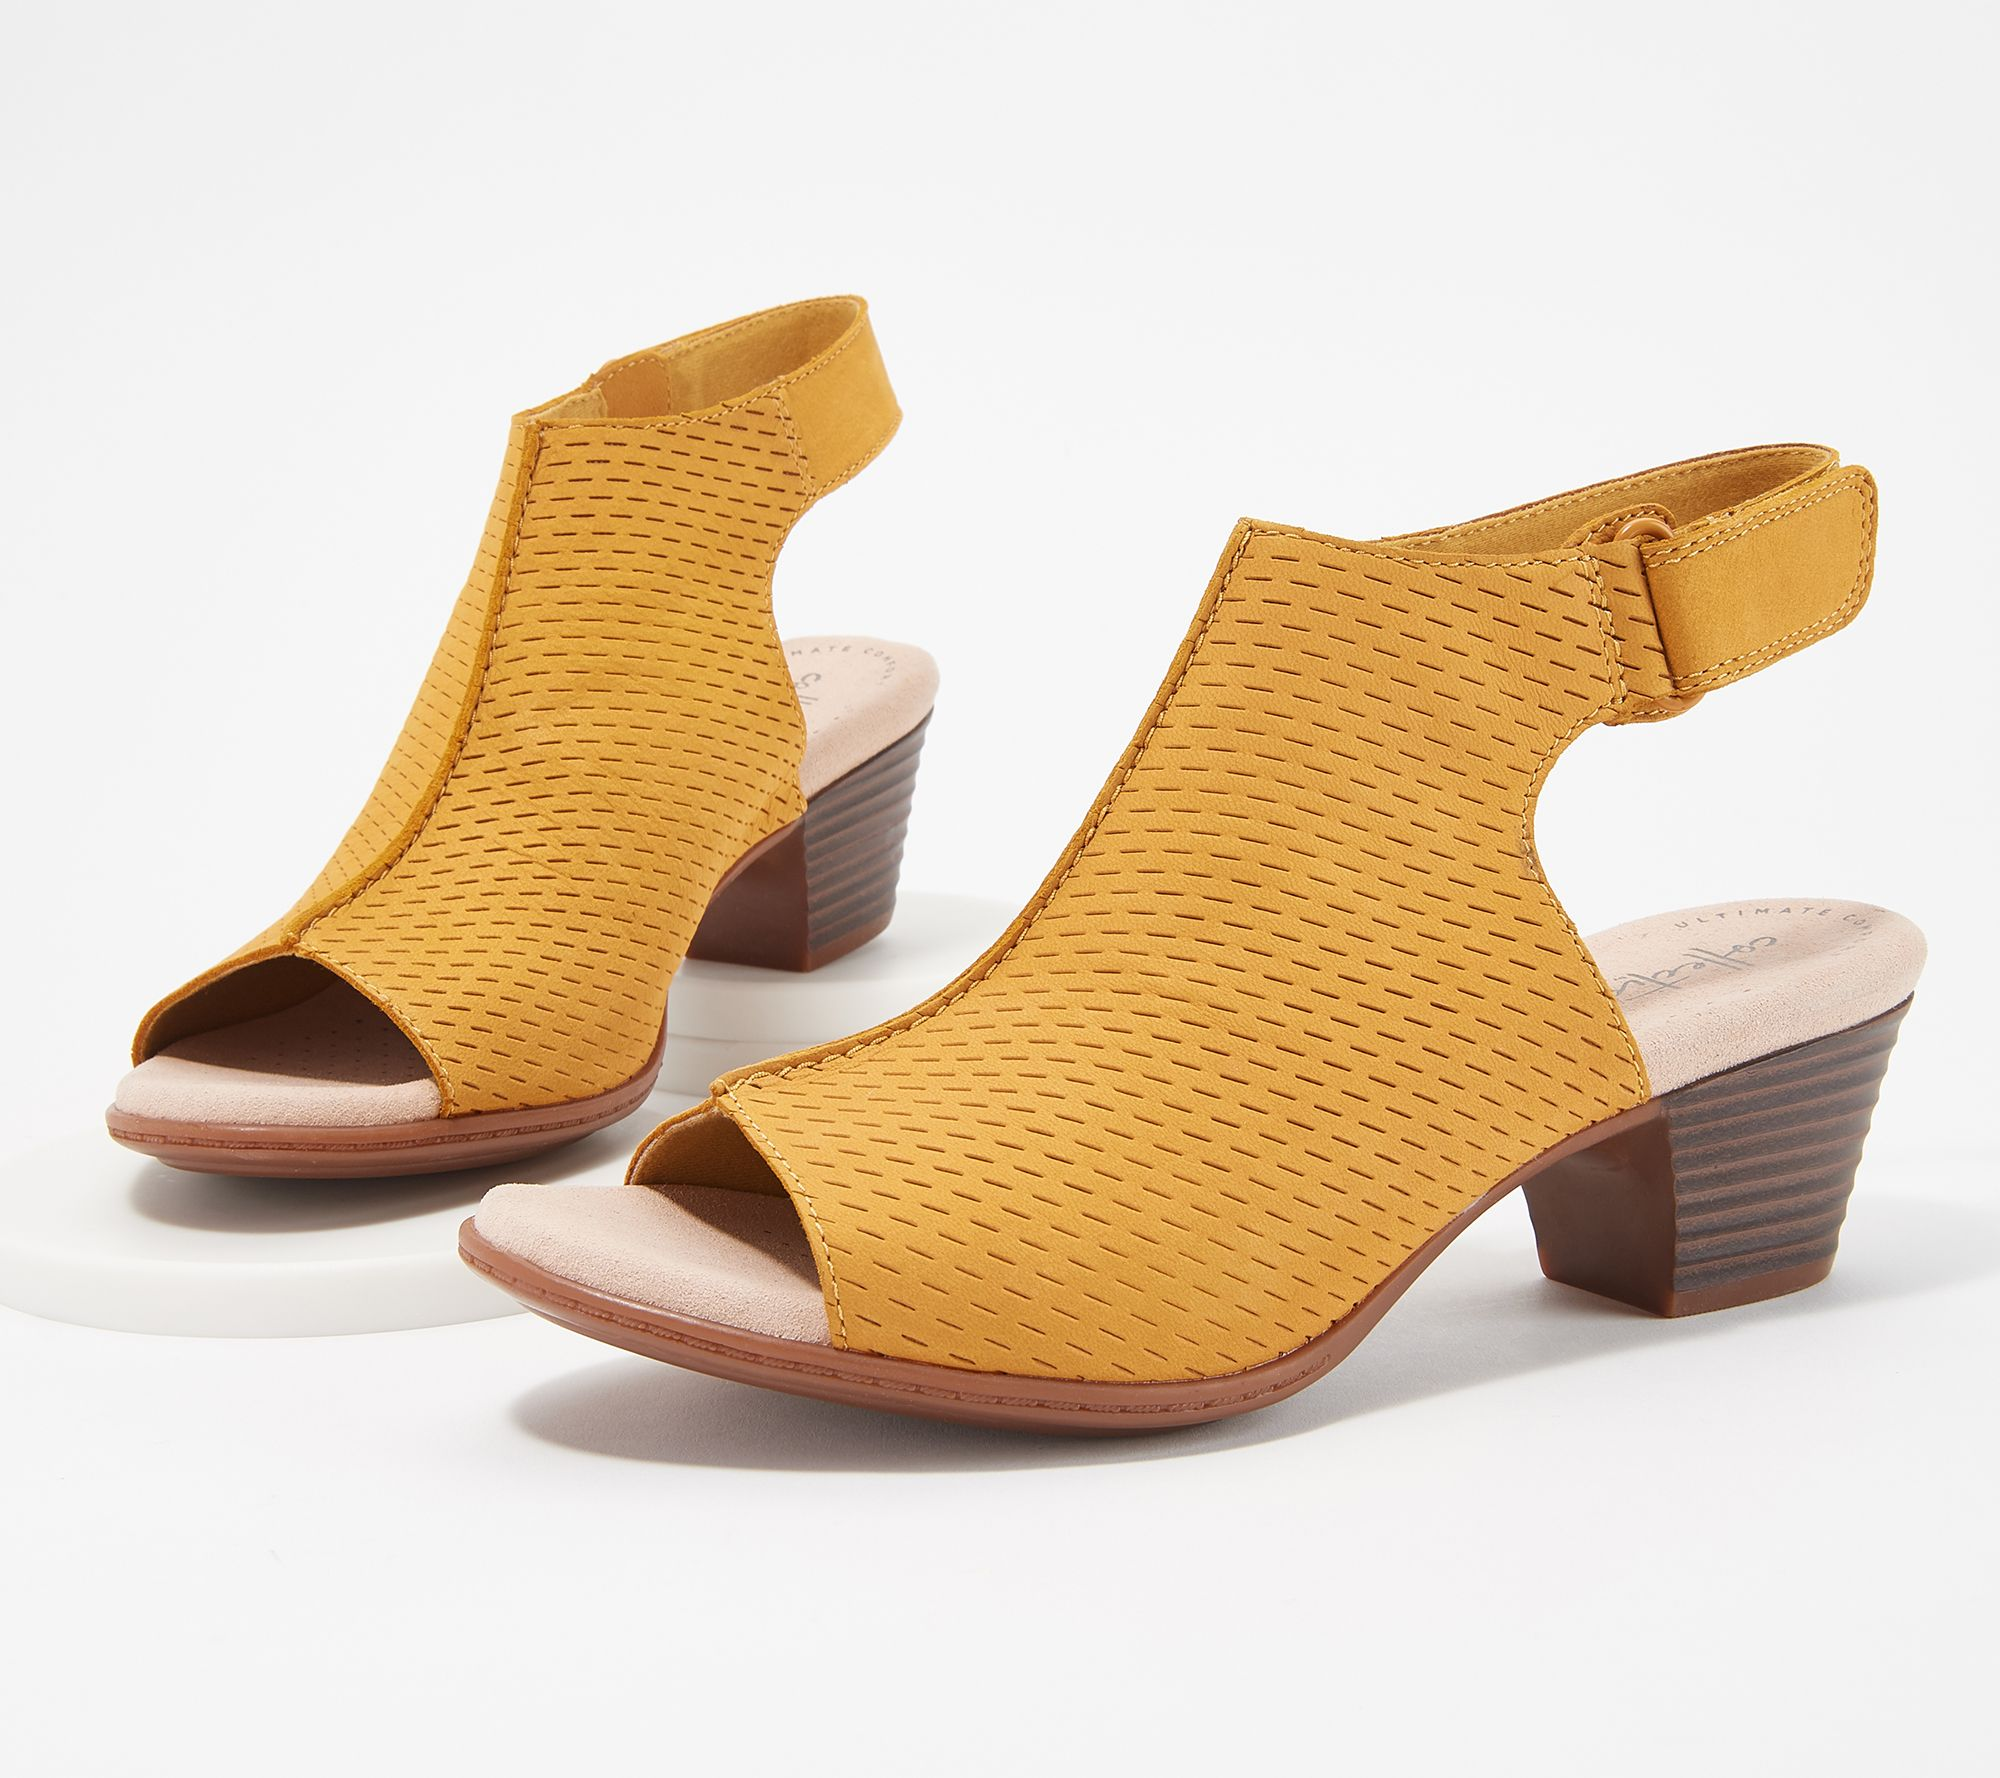 08395d699f5 Clarks Collection Leather Heeled Sandals- Valarie James — QVC.com